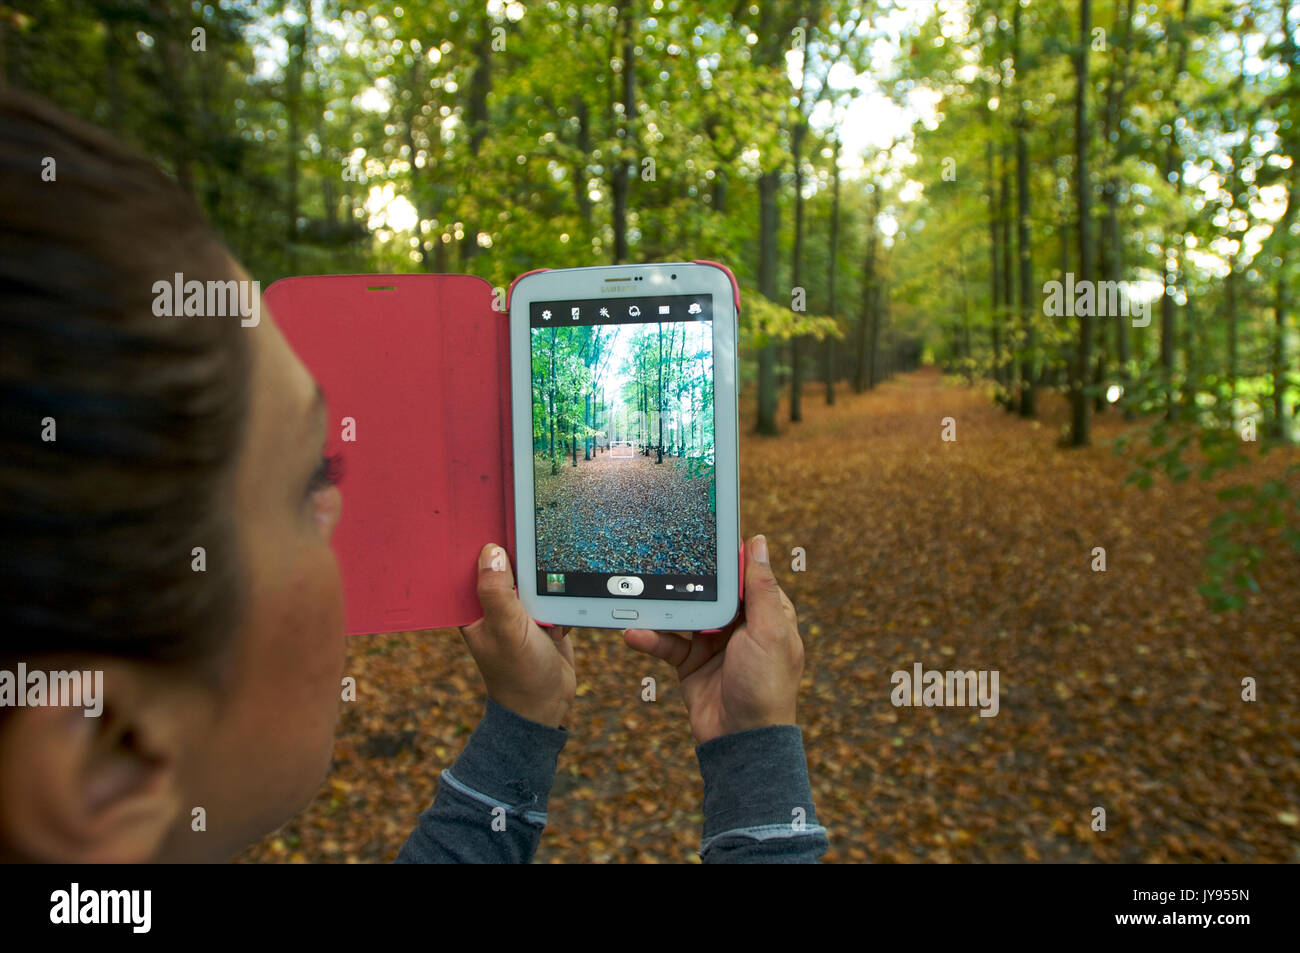 Woman holding a tablet in her hands and  taking a picture in a forest during autumn - Stock Image